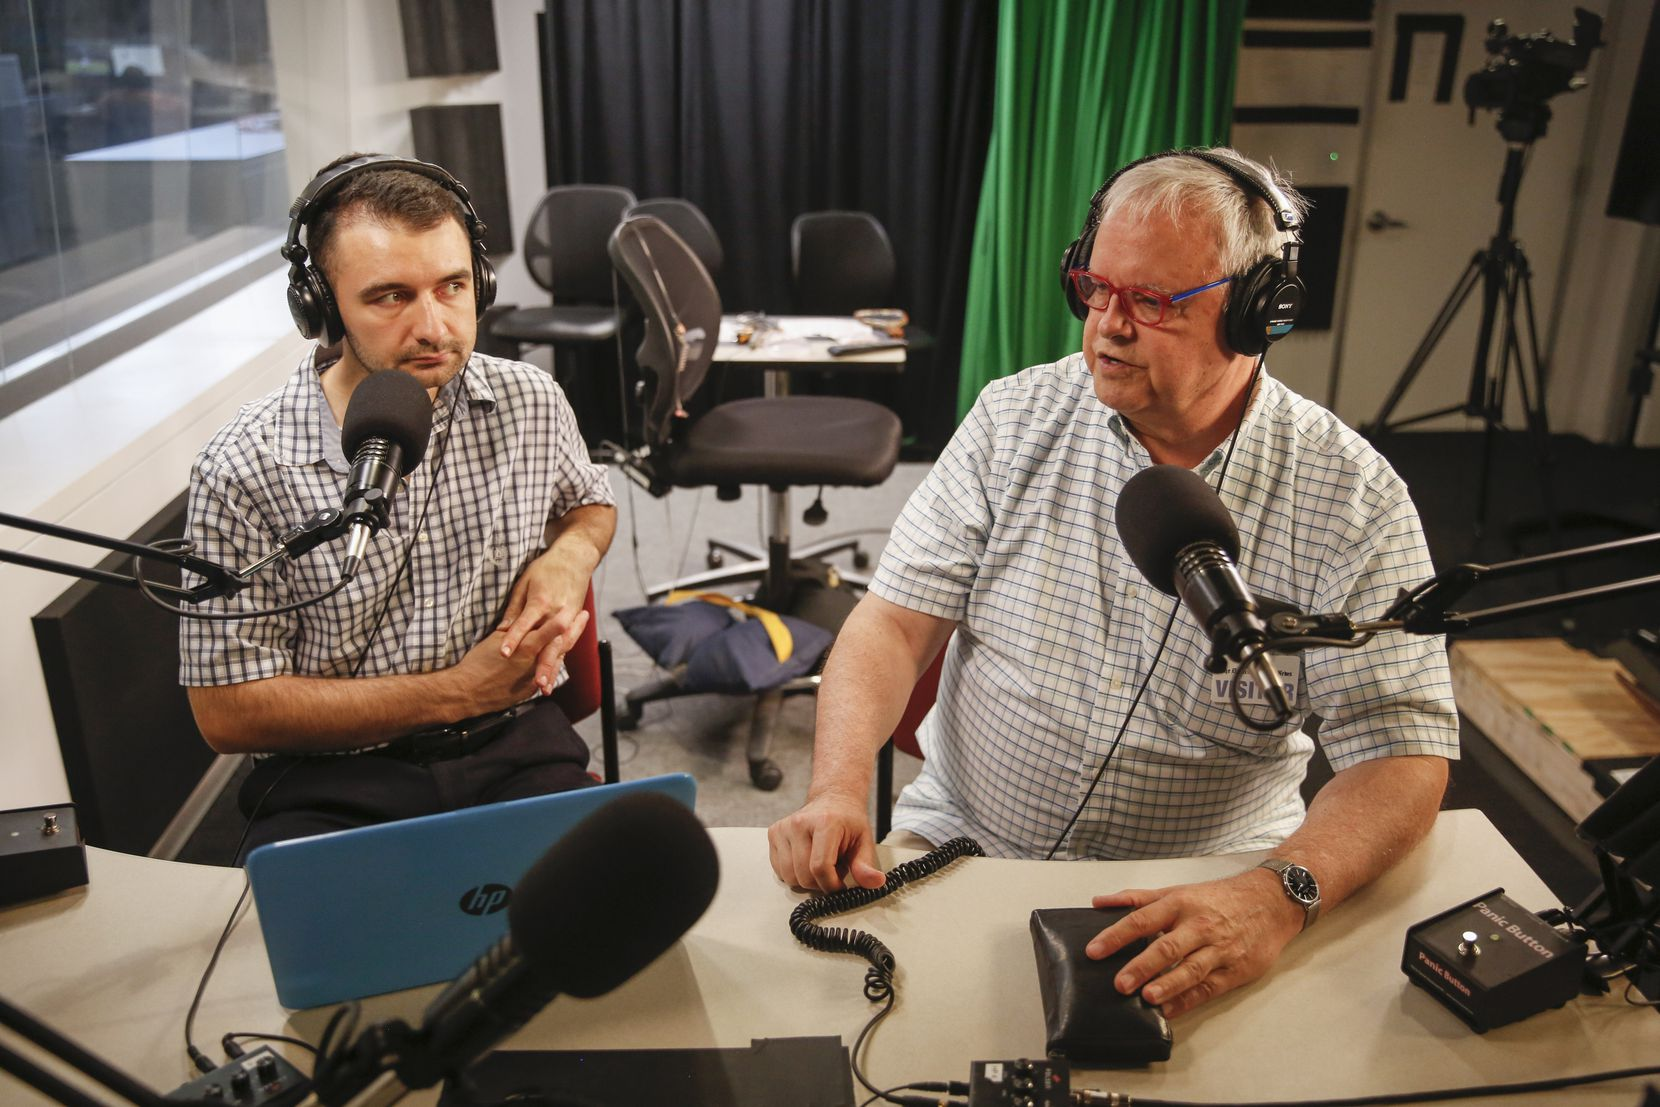 Tim Diovanni (left) interviews critic Scott Cantrell in 2019 for the classical music podcast project 'How to Listen' at The Dallas Morning News studio.